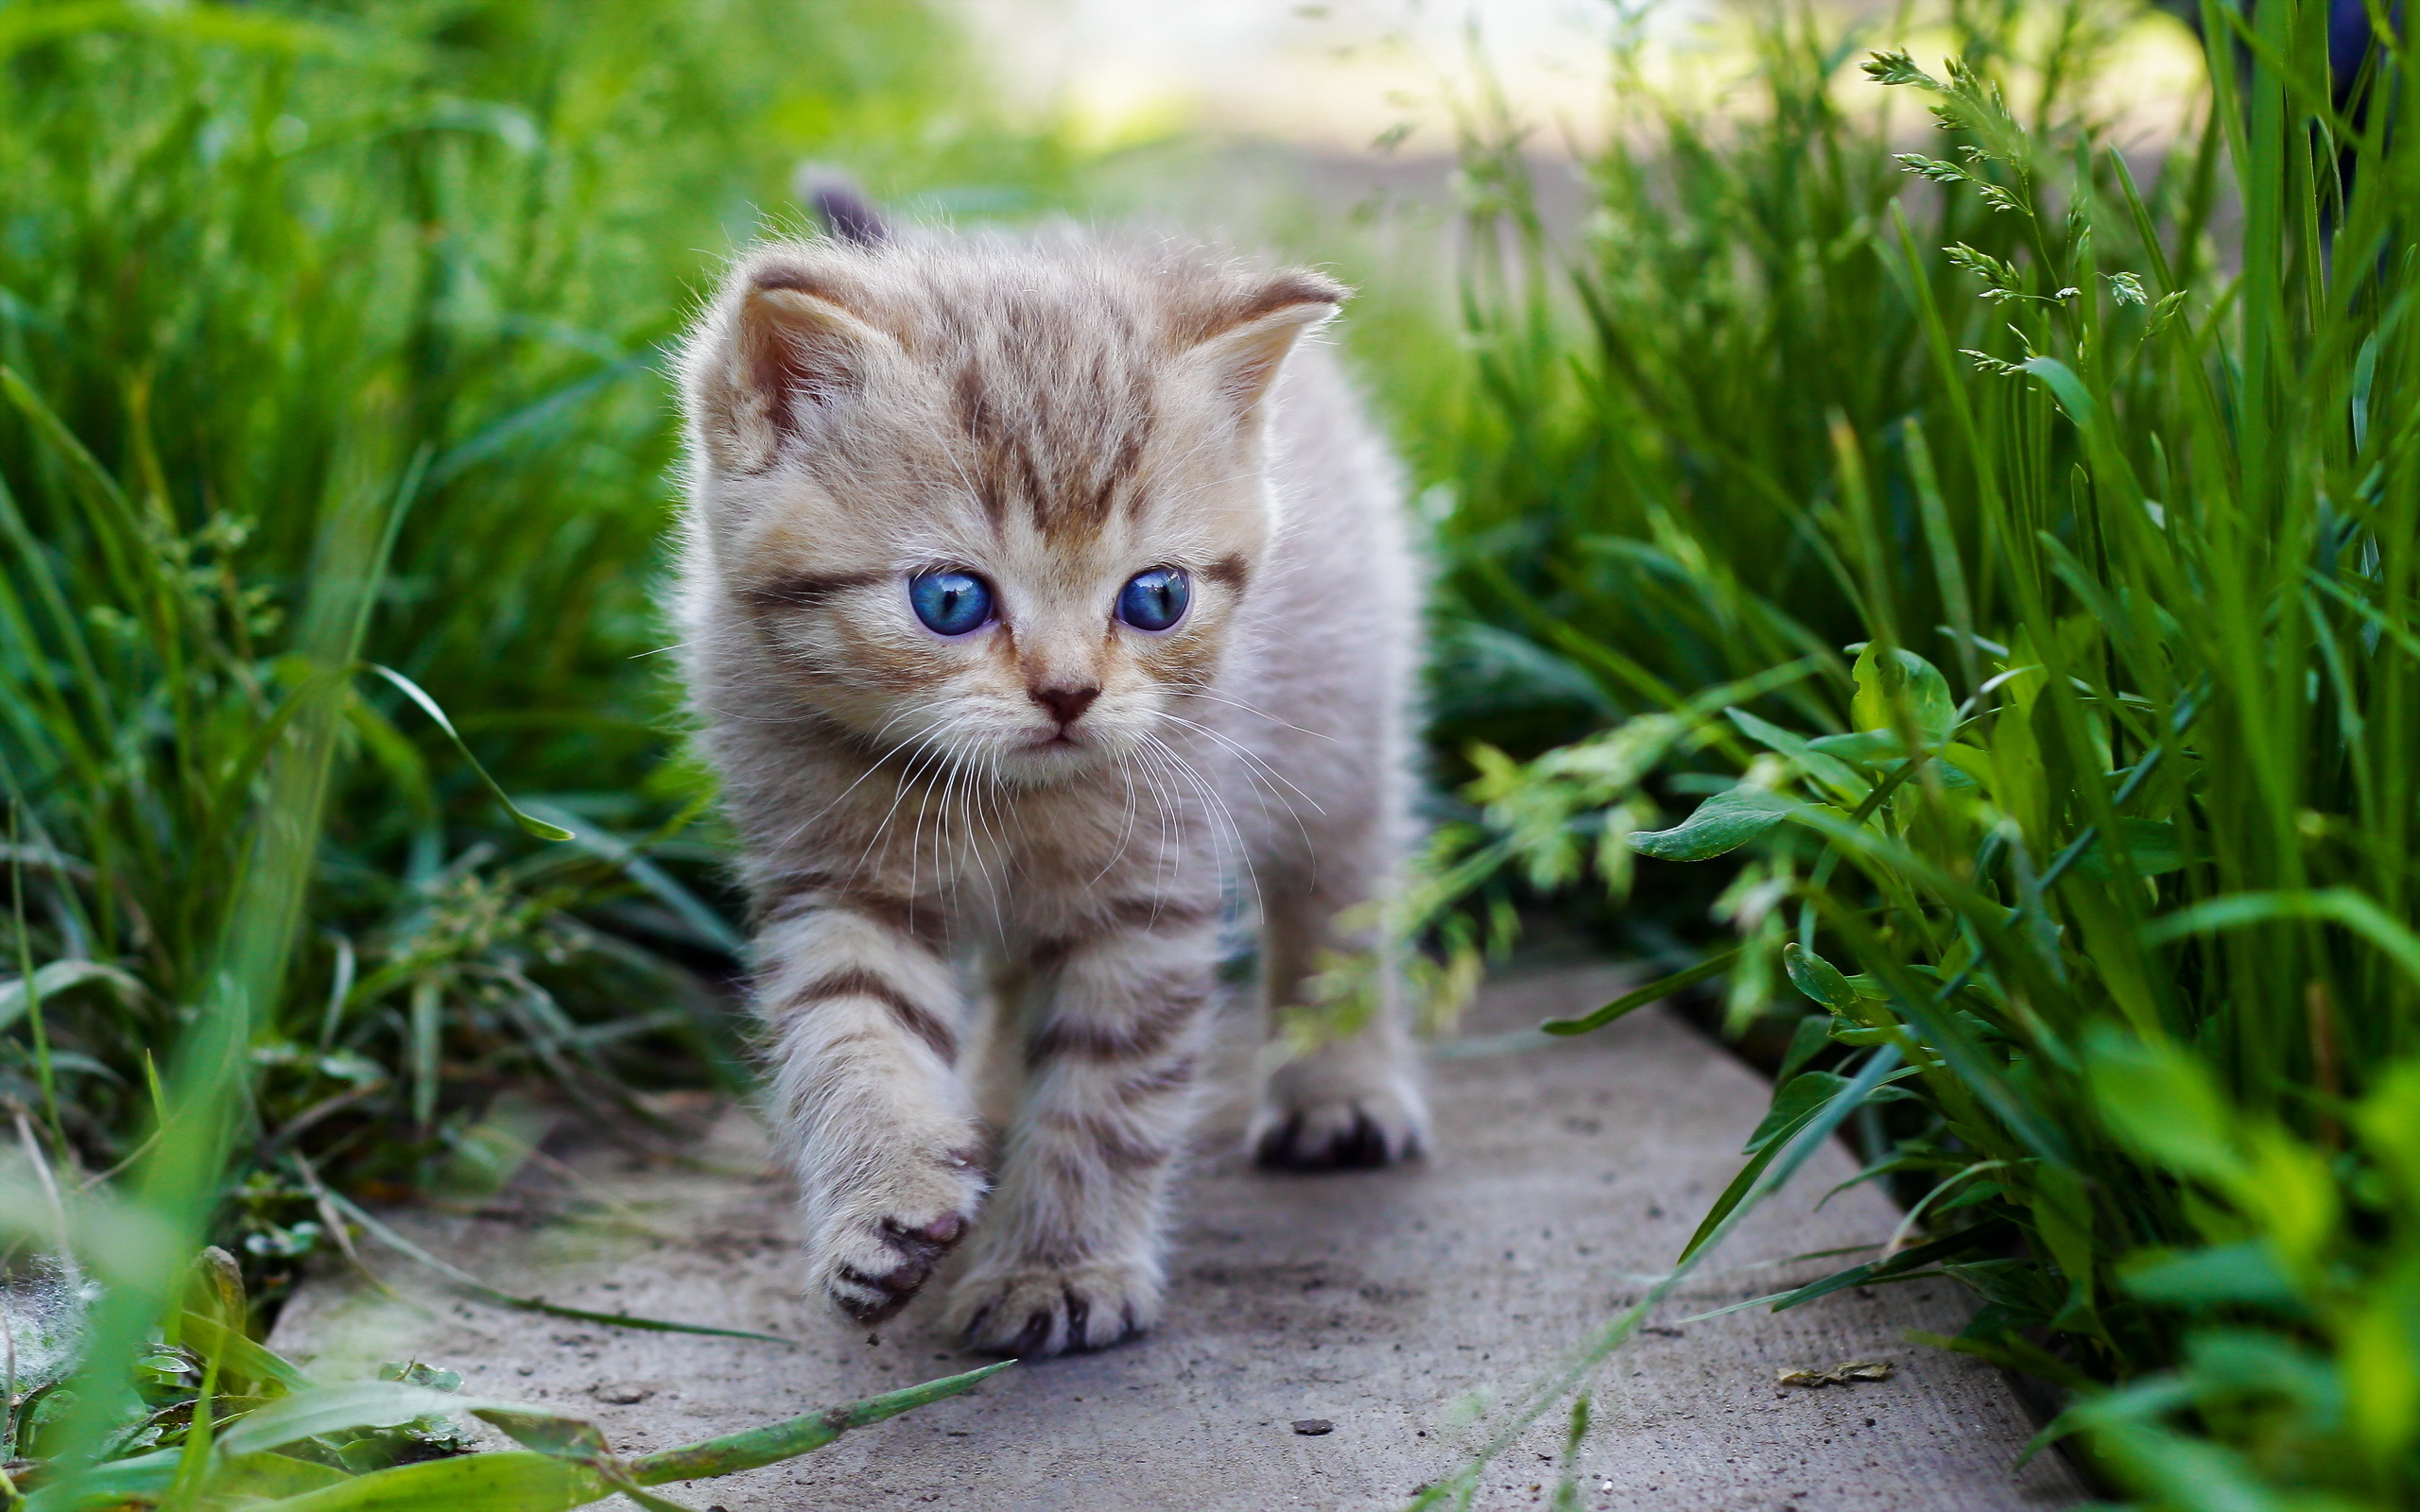 Cats Kittens Grass Animals Kitten Eyes Baby Cute Cat Wallpaper 2560x1600px